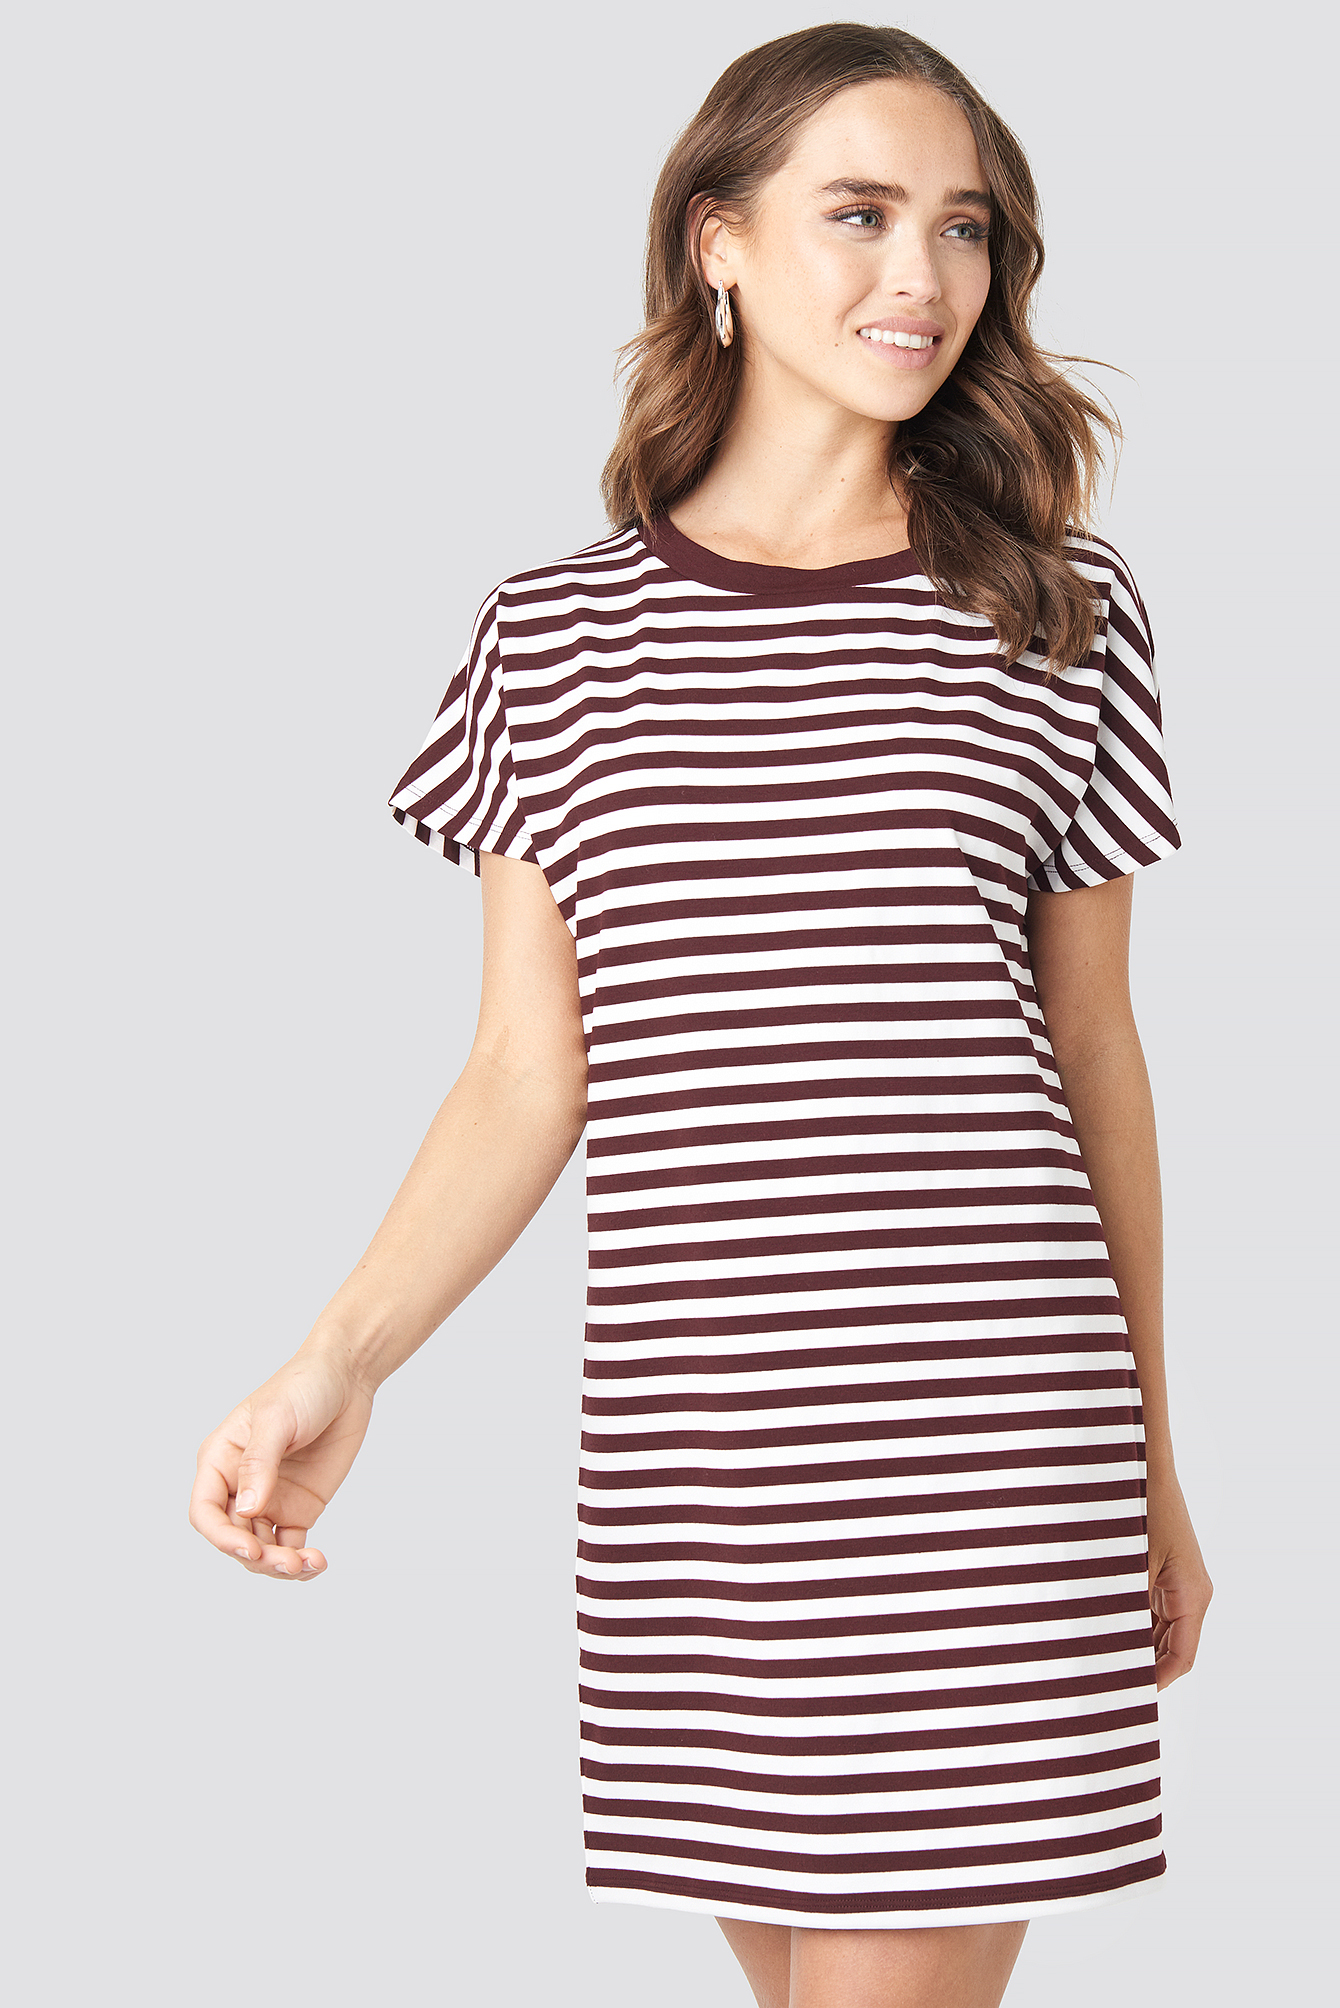 Burgundy Striped Oversized T-shirt Dress